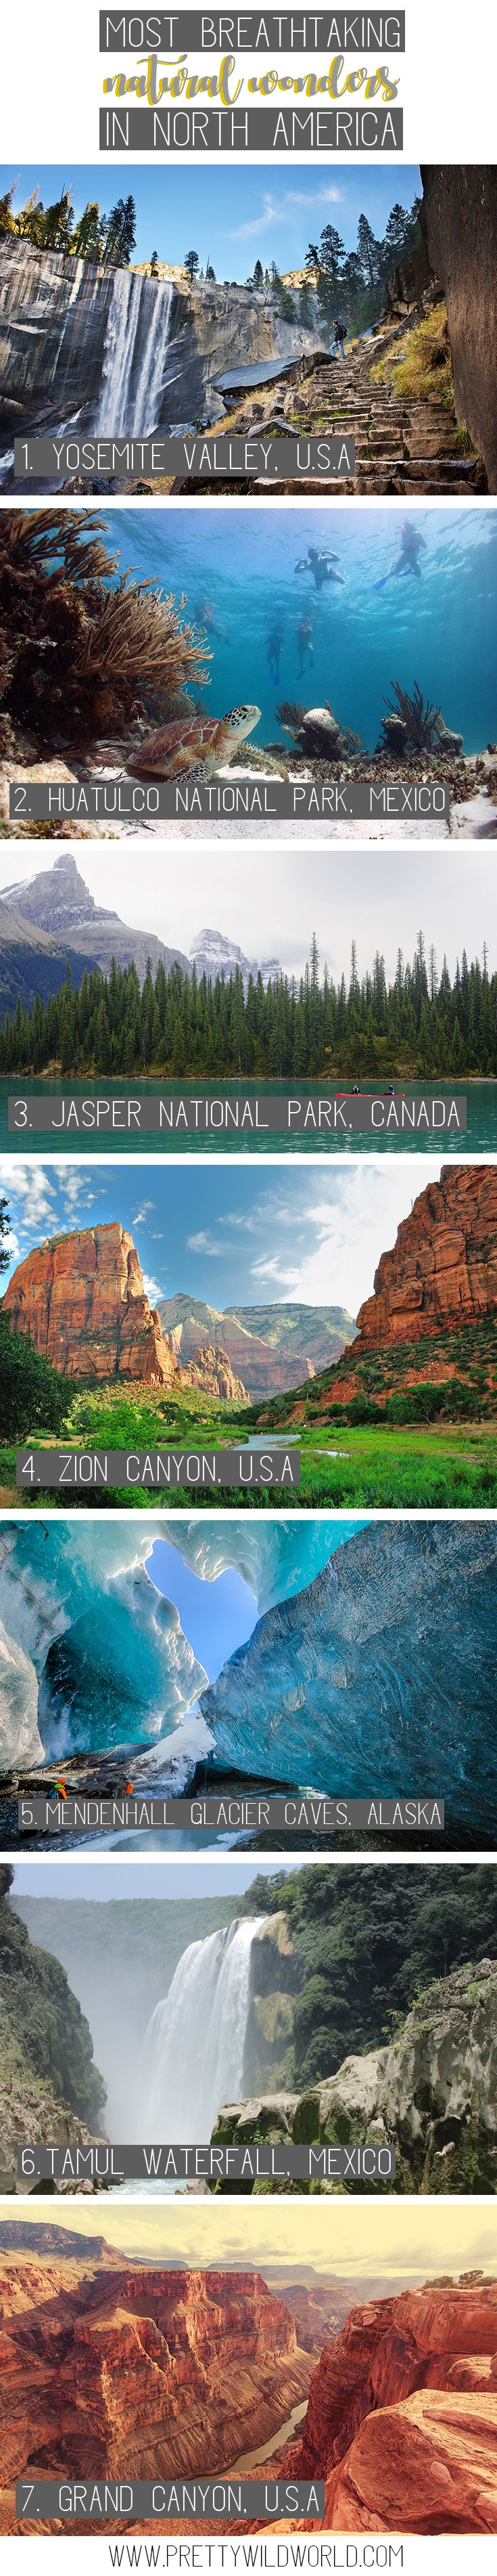 Breathtaking natural wonders in North America